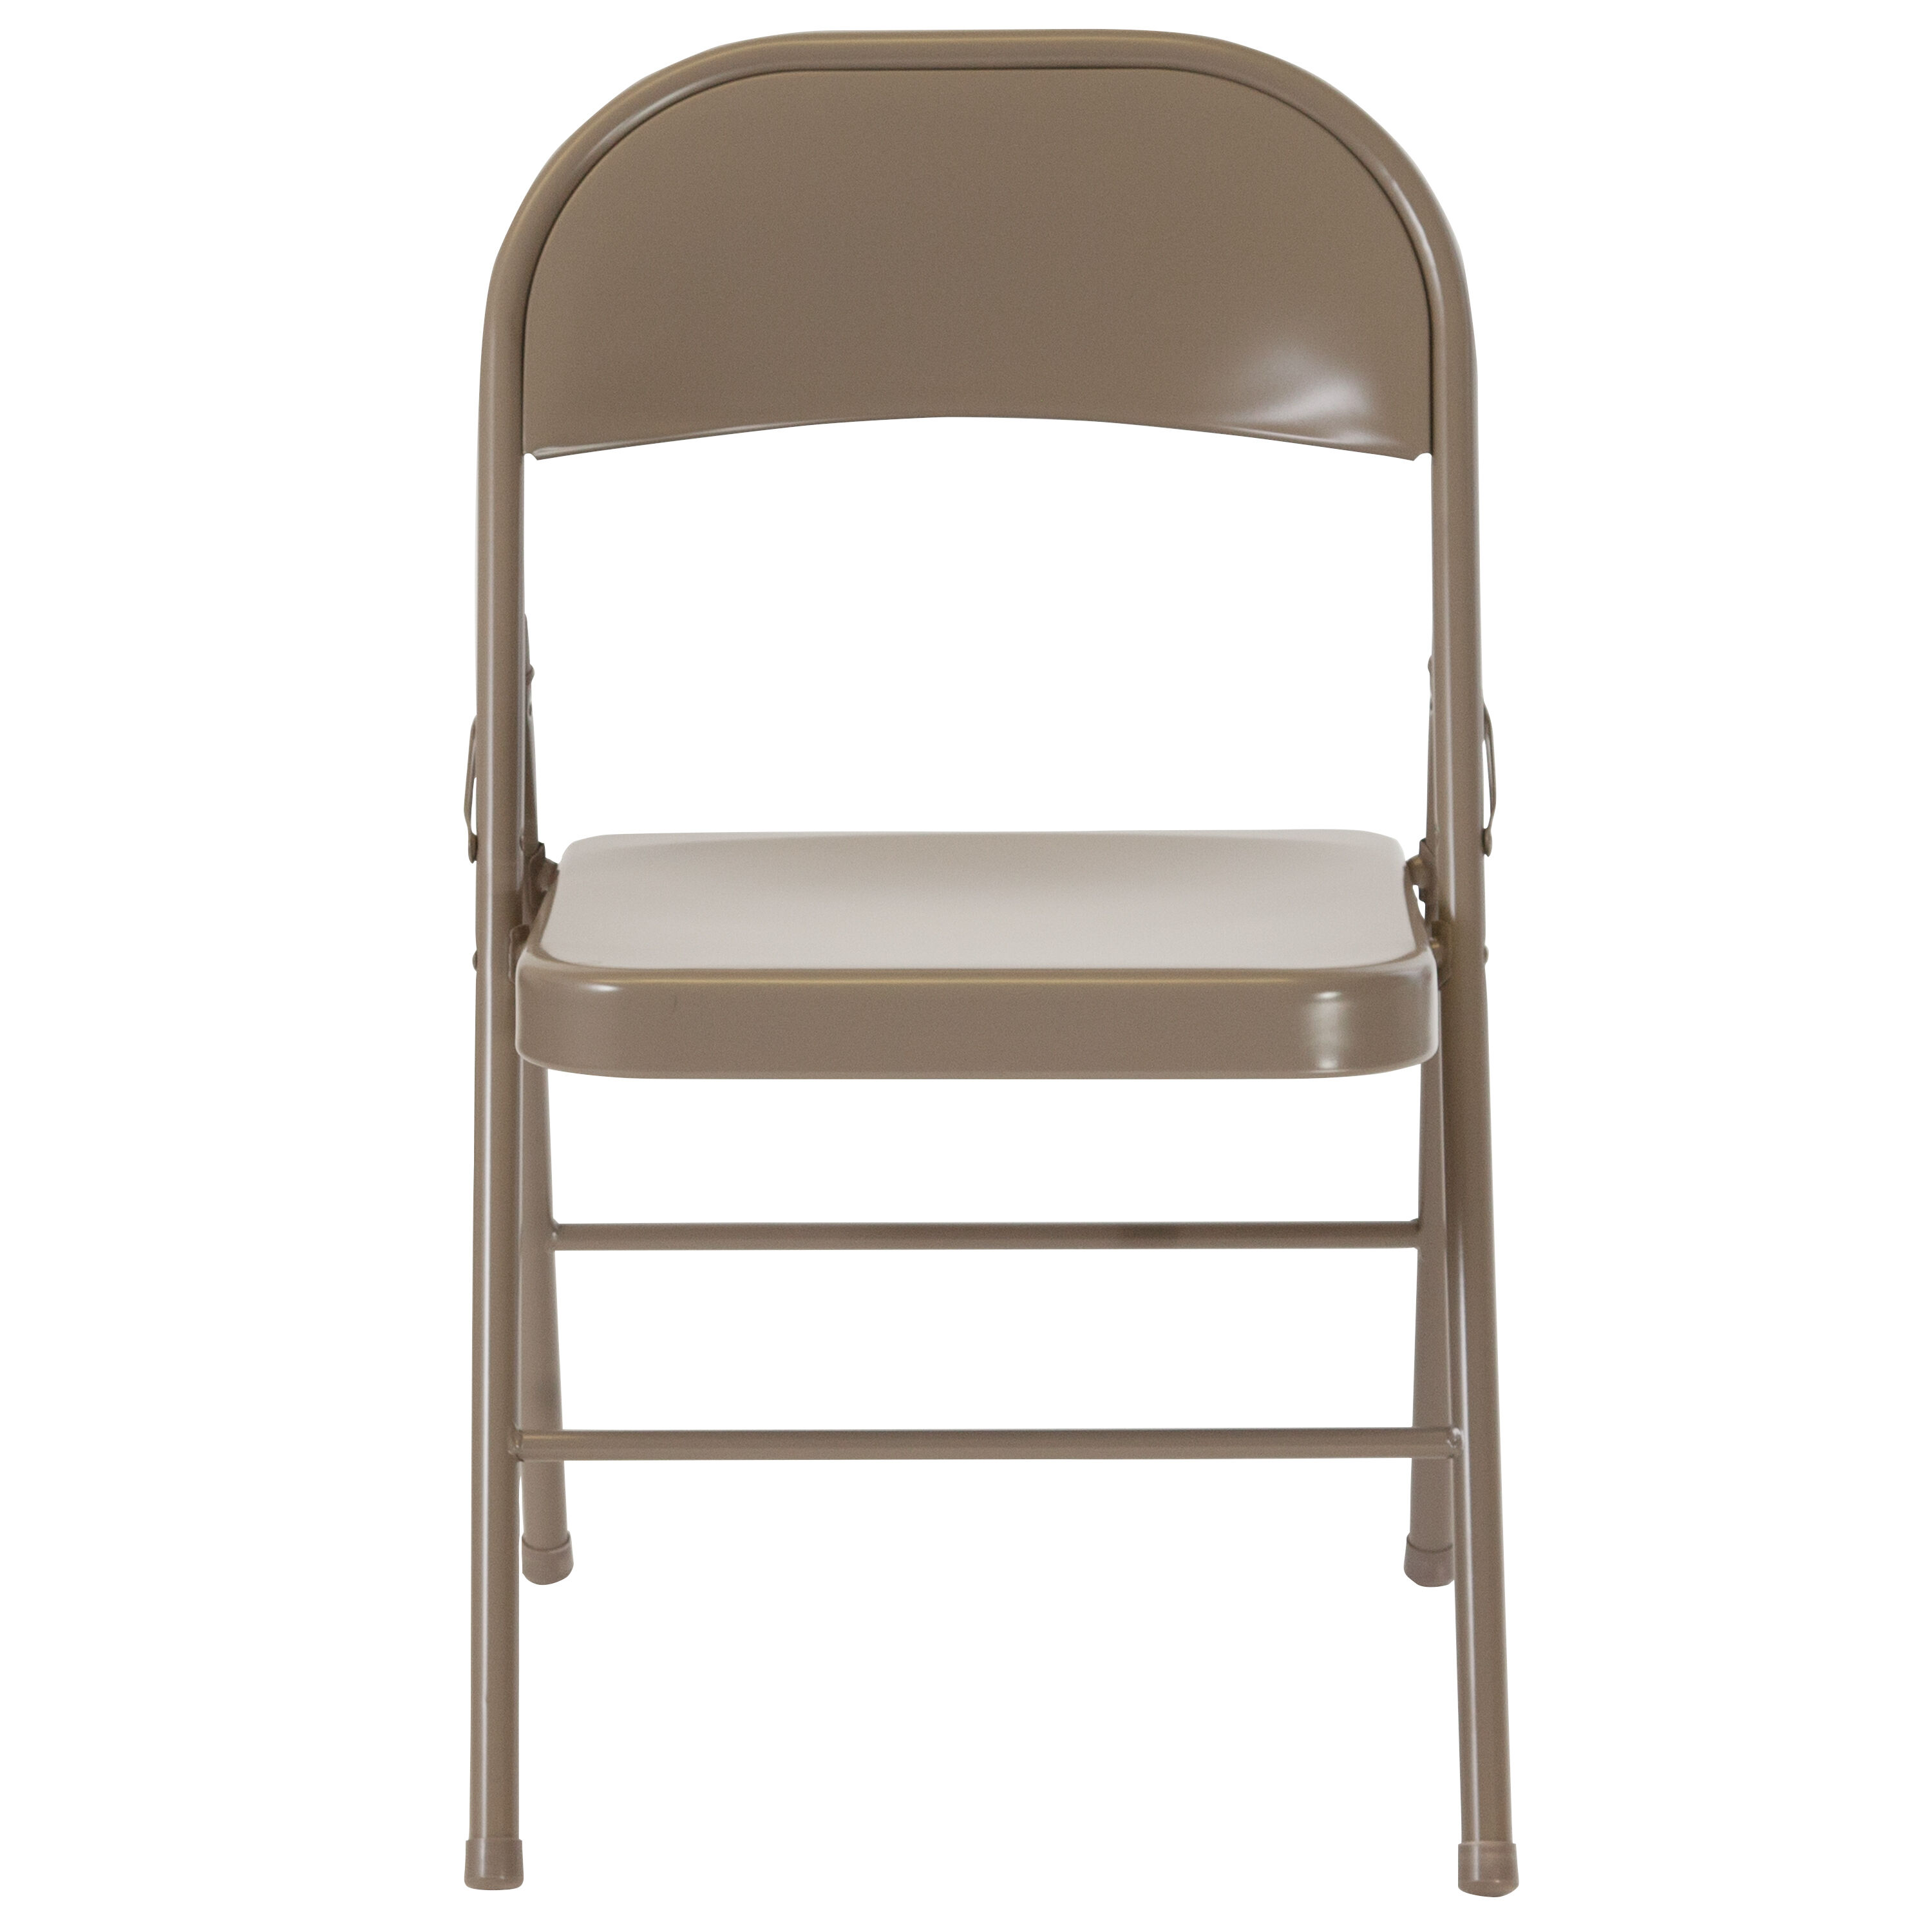 steel chair price in bangladesh leather armchair gray metal folding bd f002 gy gg churchchairs4less